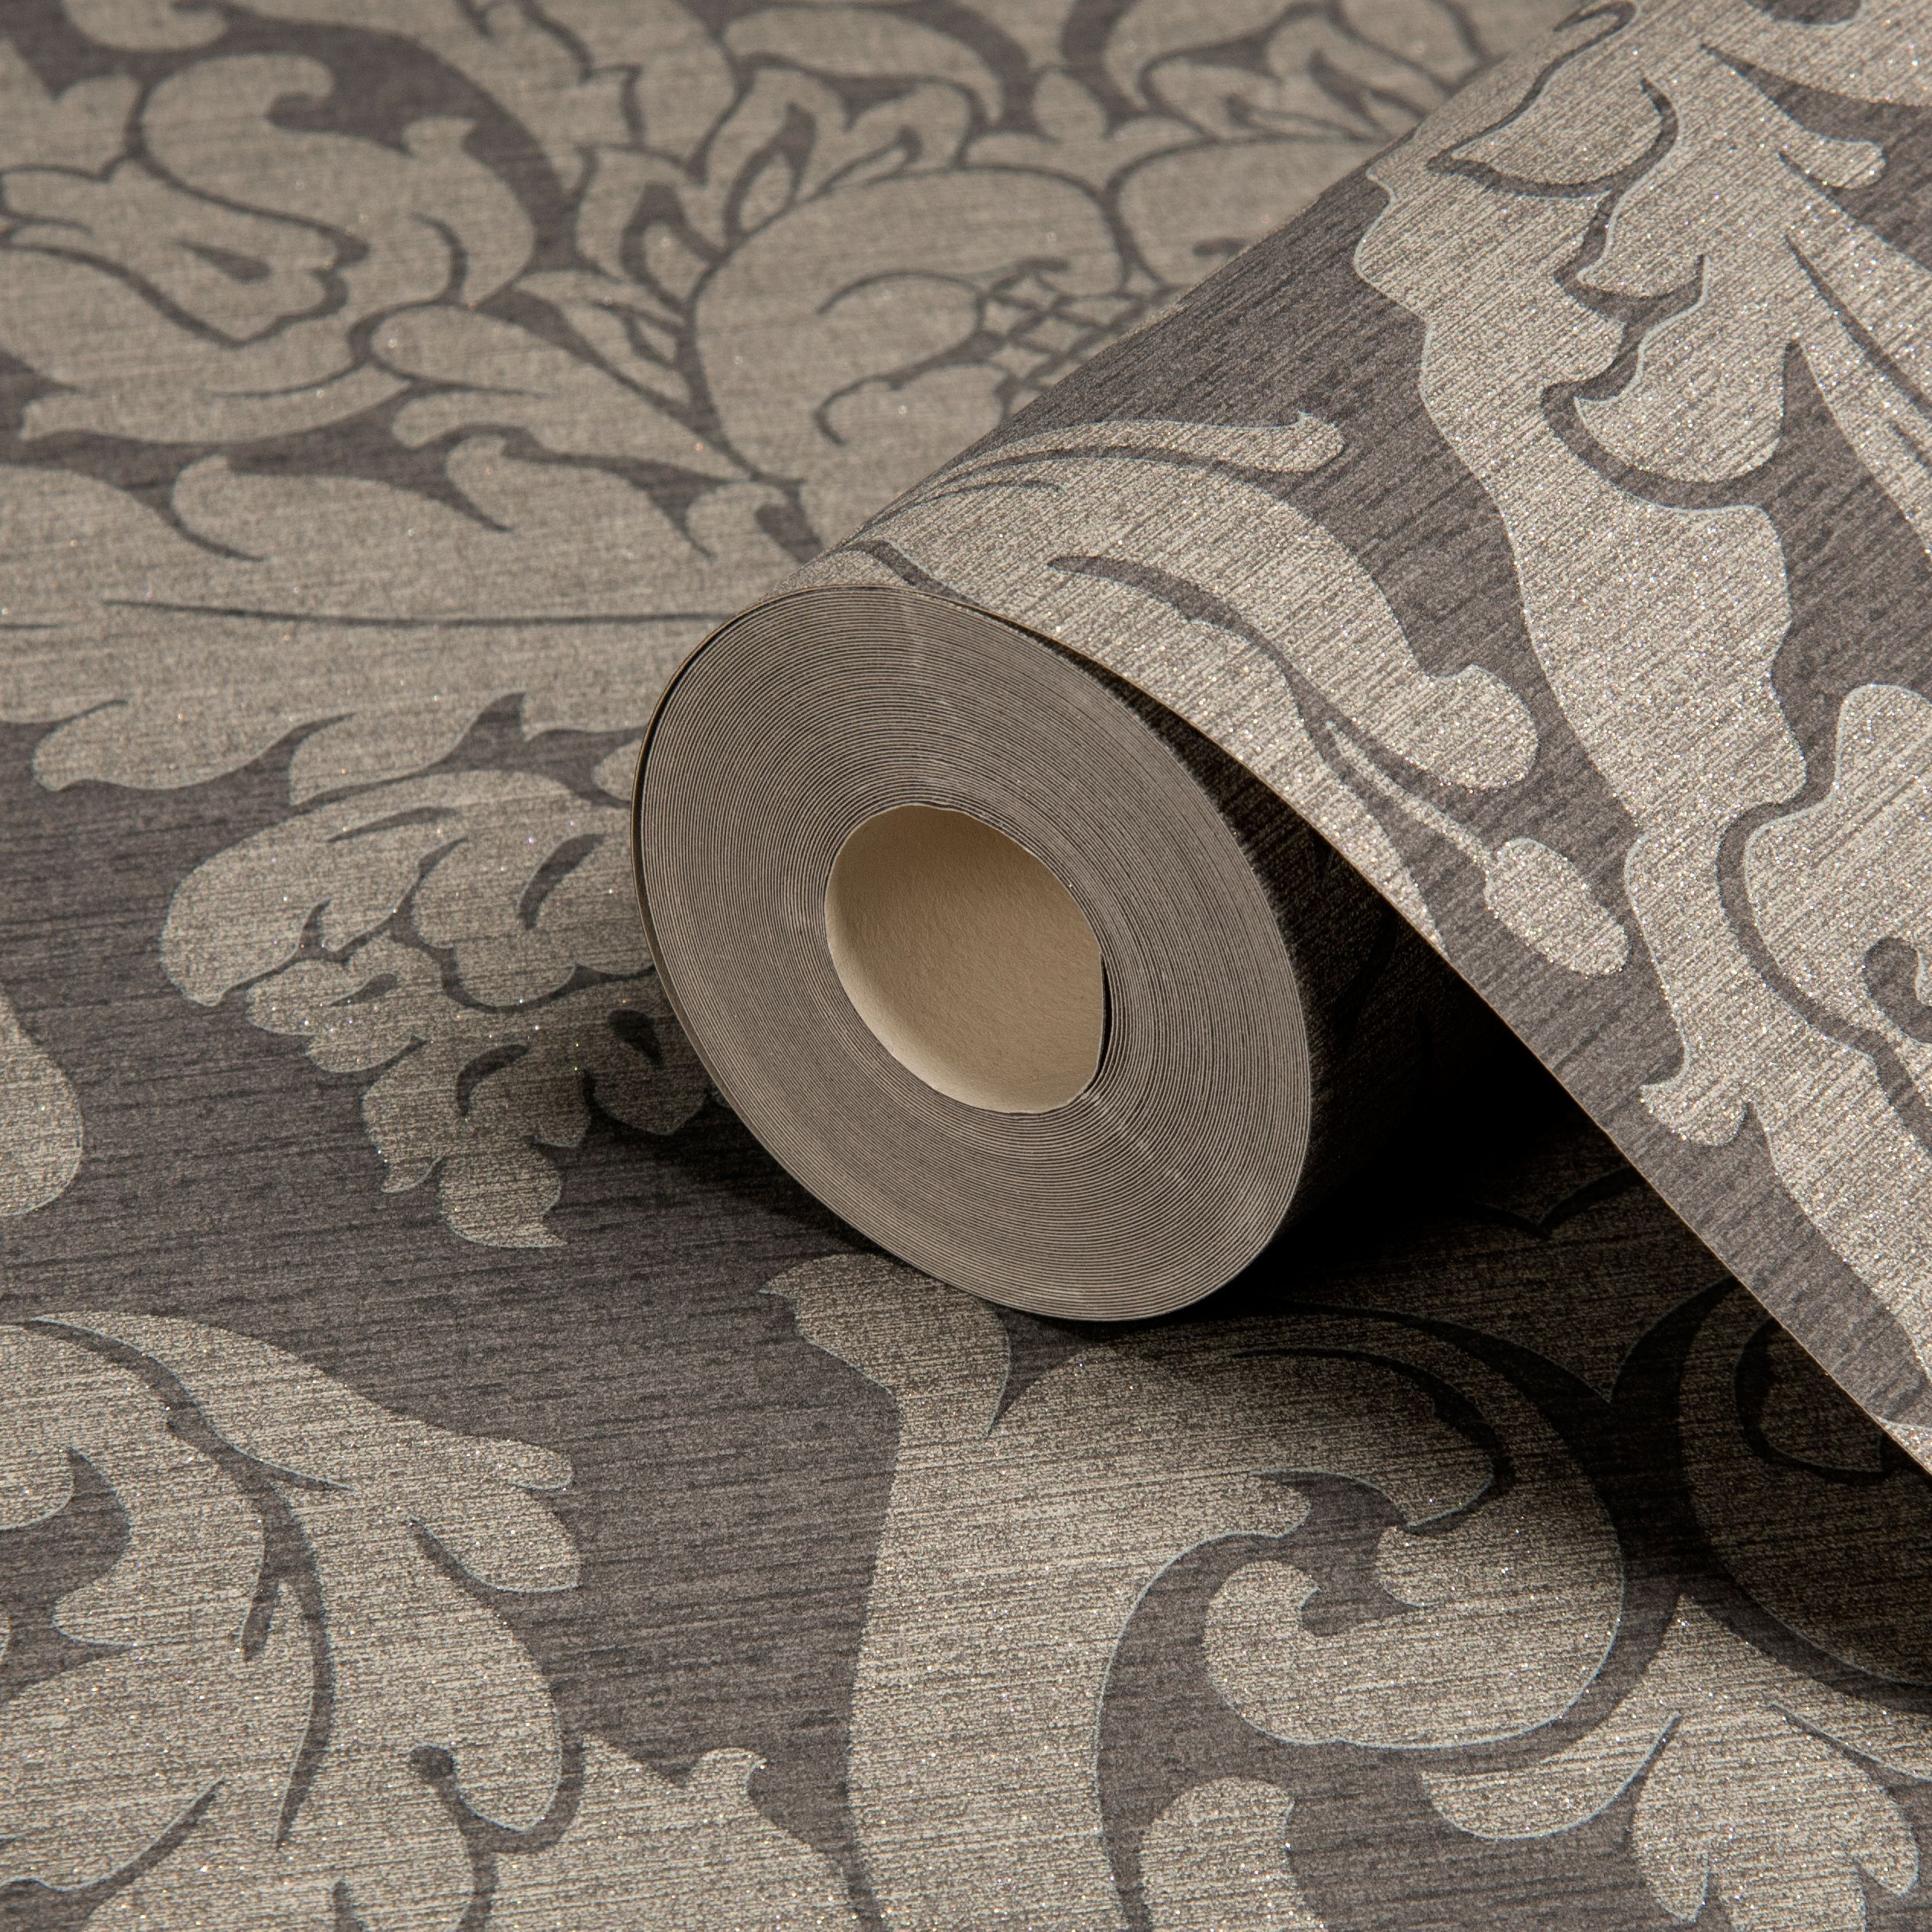 Gold Kensington Charcoal Damask Metallic Wallpaper